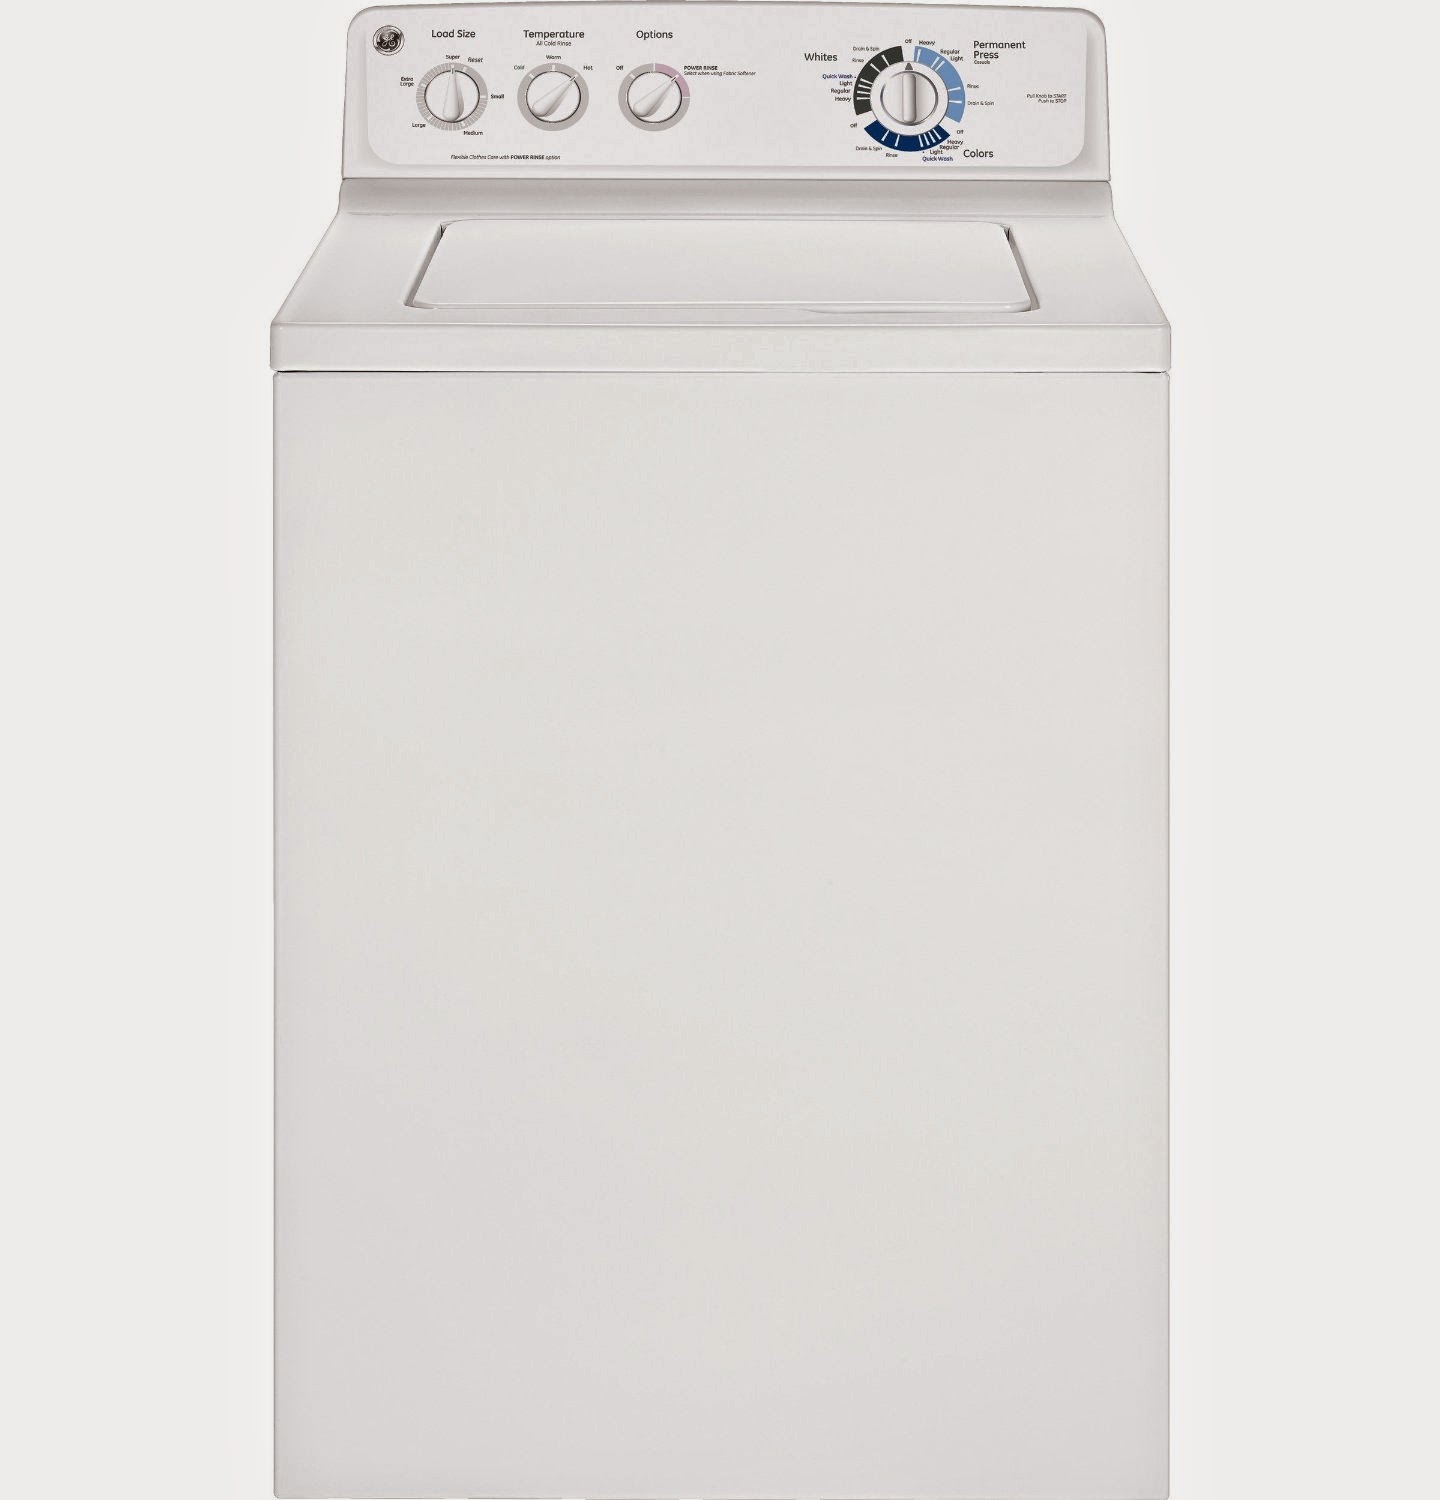 The best top load washer on the market - Best Top Load Washer With Agitator